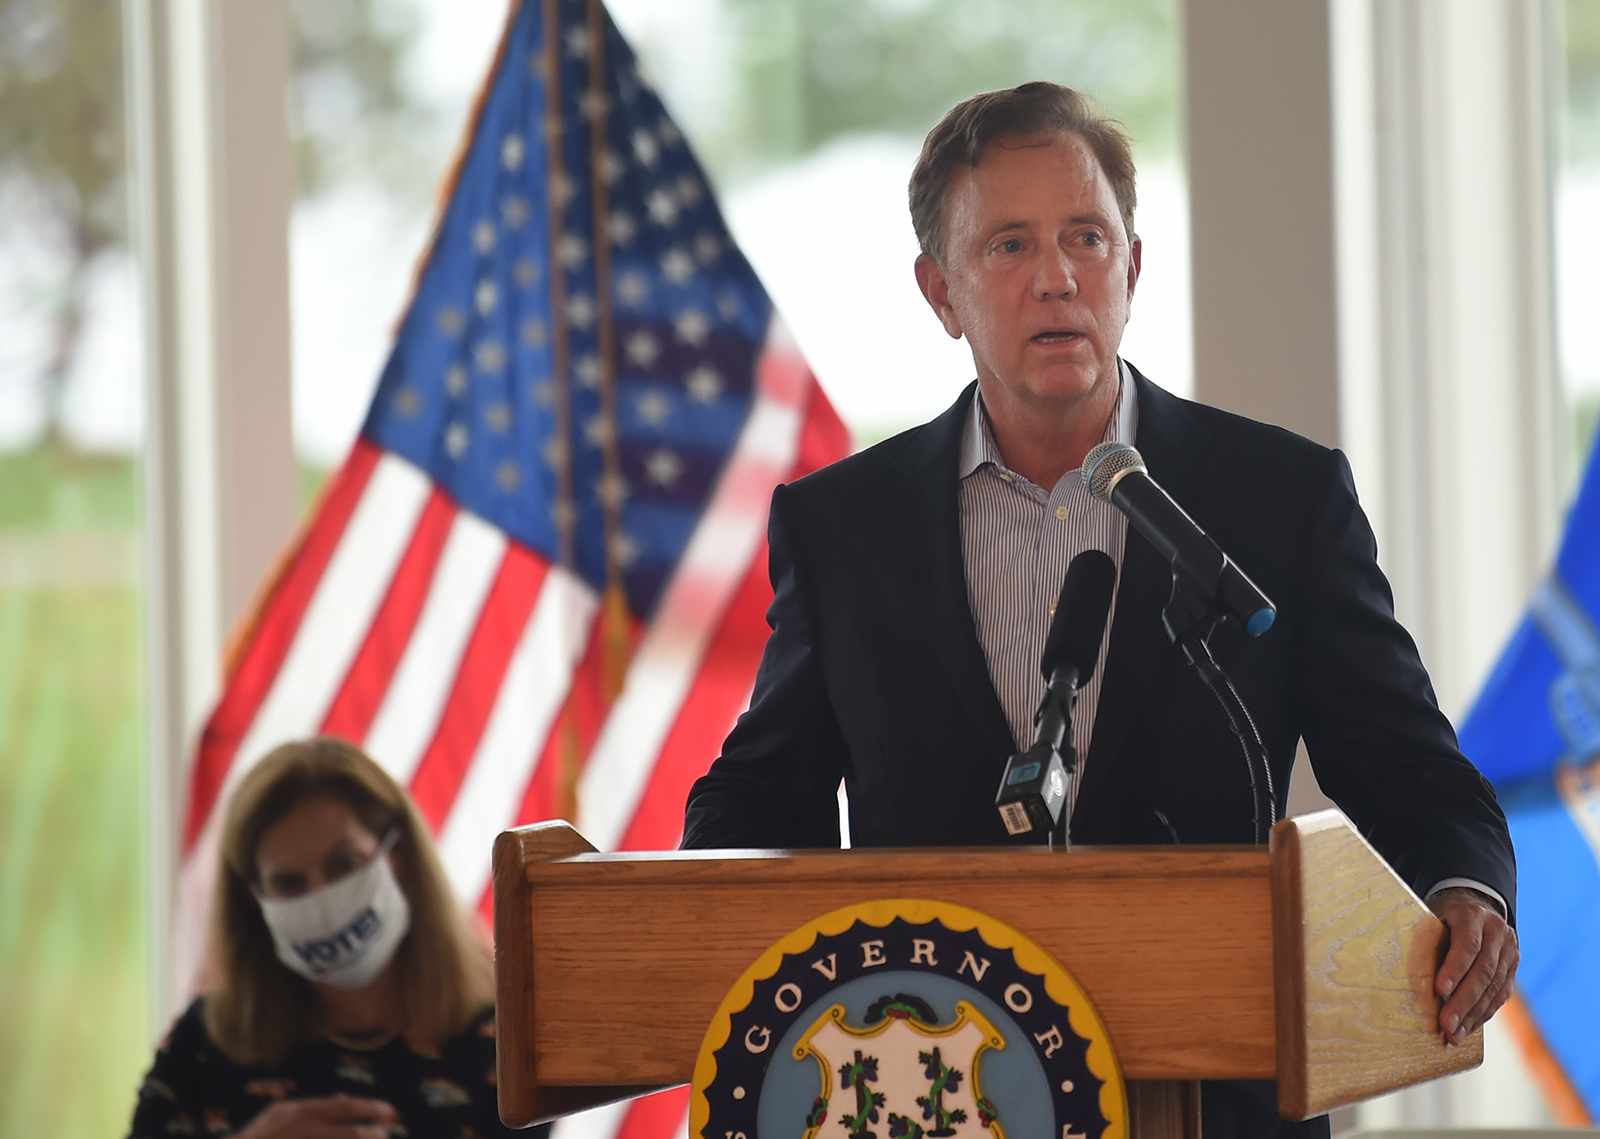 Gov. Ned Lamont speaks at the 19th annual 9/11 Memorial ceremony at Sherwood Island State Park Thursday, September 9, in Westport, Connecticut.